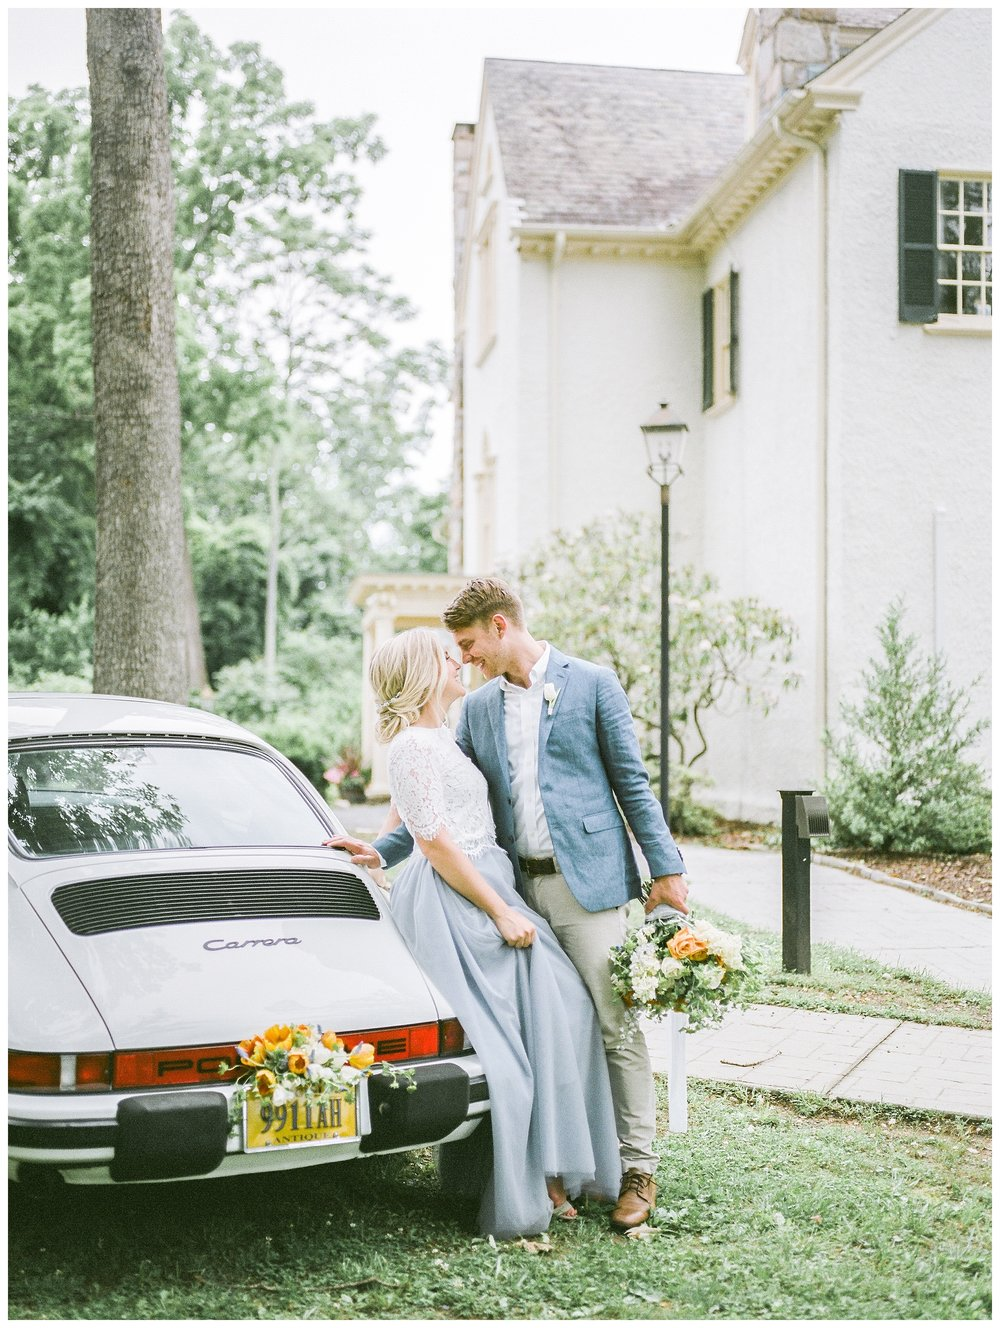 Rust Manor Wedding | Virginia Wedding Photographer Kir Tuben_0017.jpg